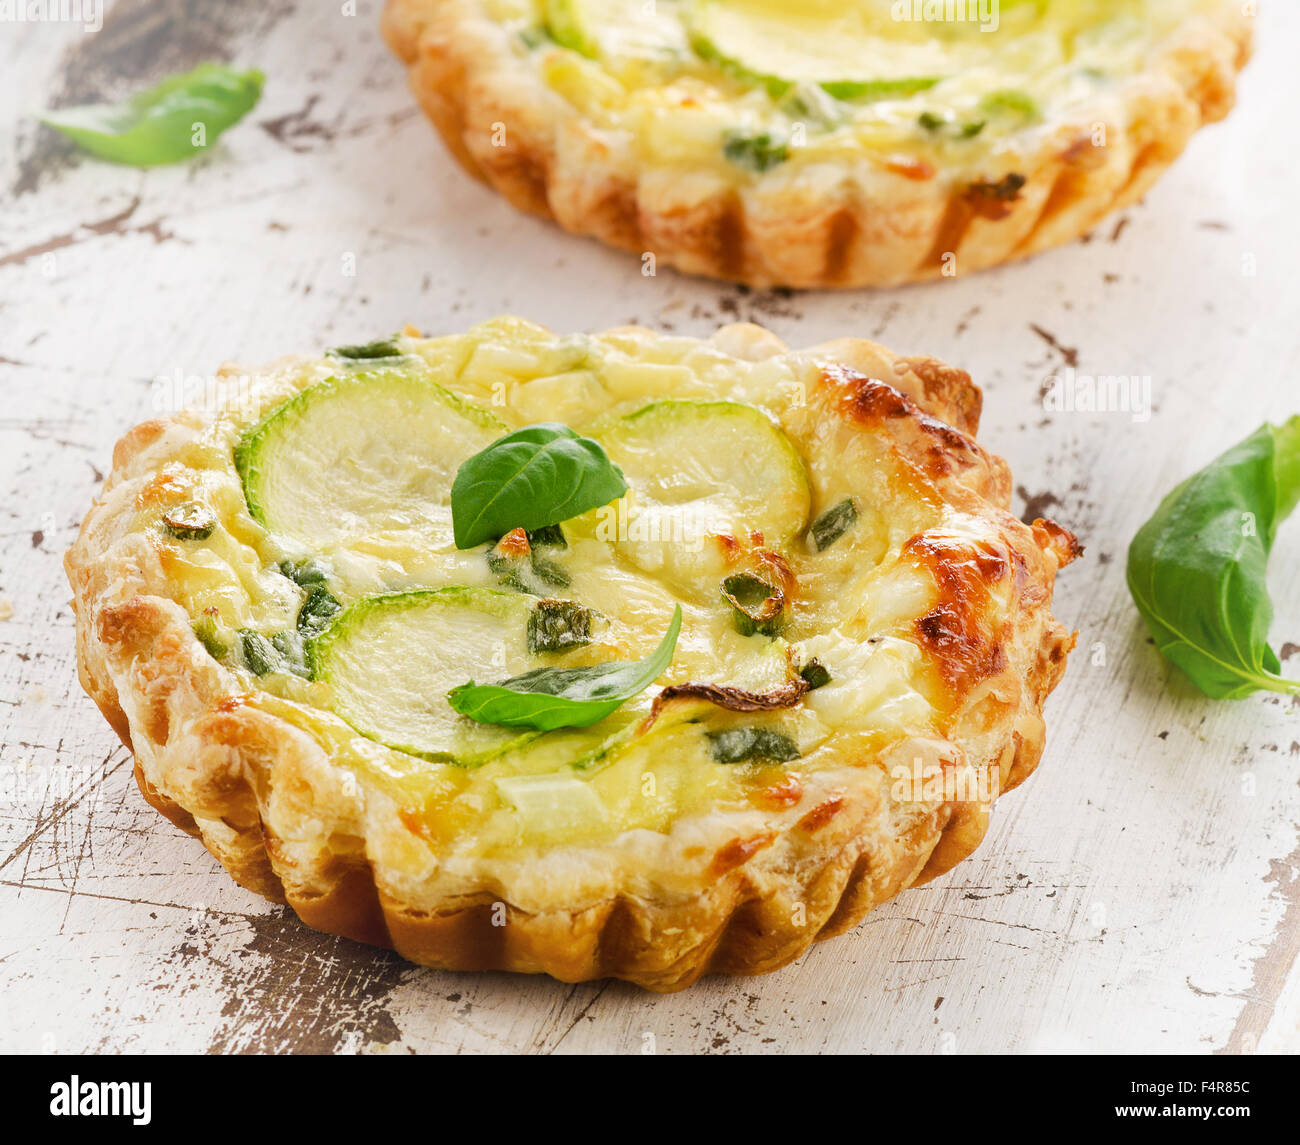 Tart with cheese on wooden table. Selective focus - Stock Image